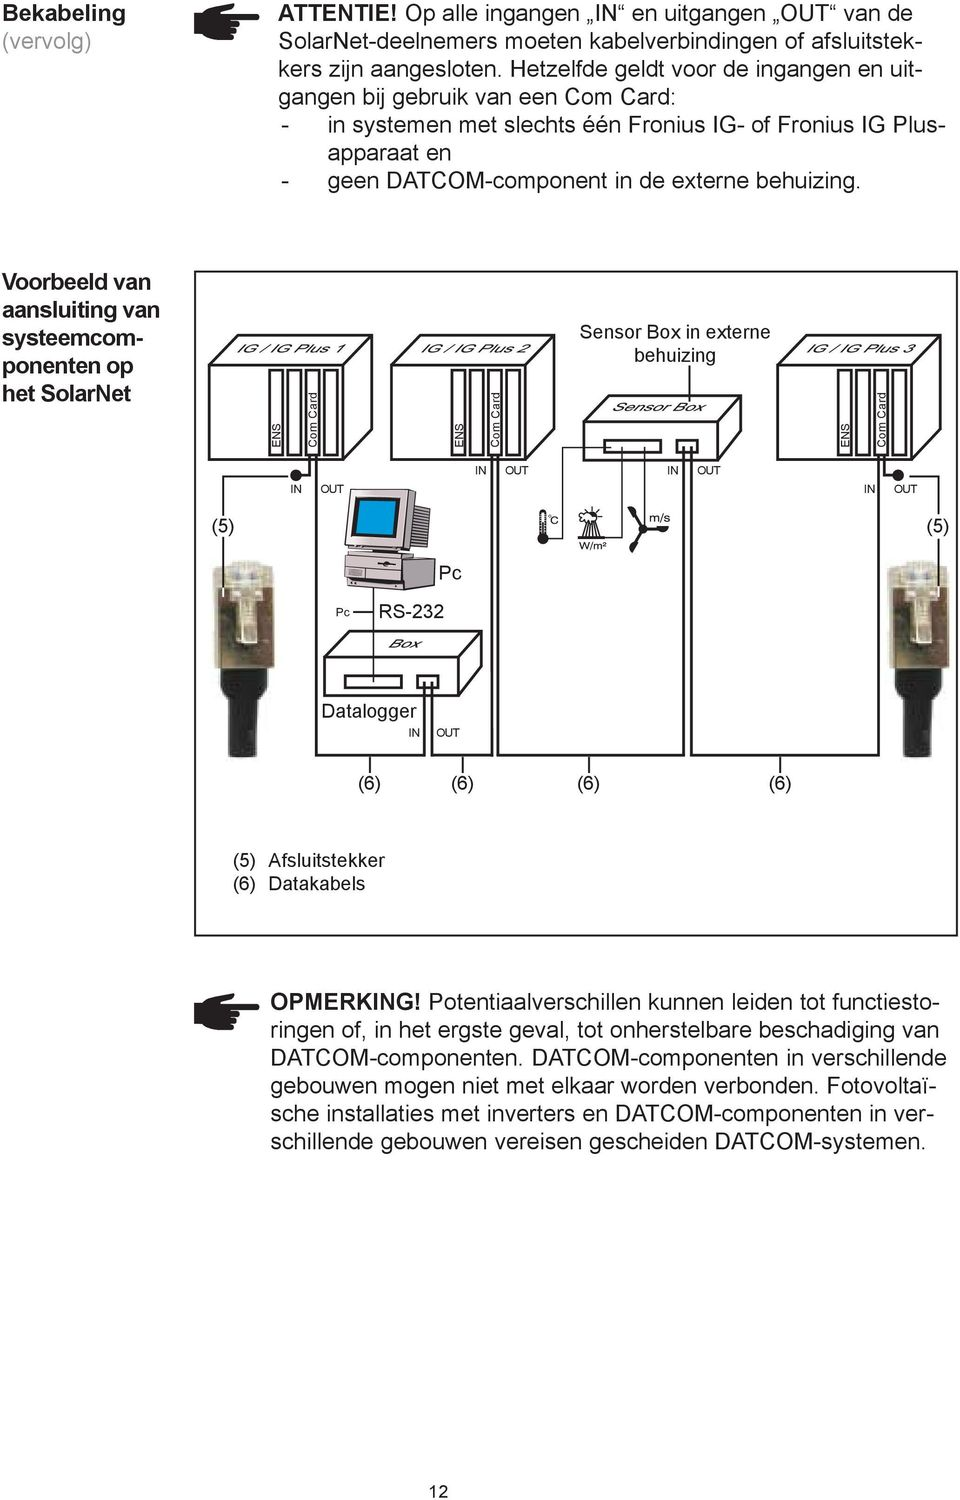 Voorbeeld van aansluiting van systeemcomponenten op het SolarNet ENS Com Card ENS Com Card Sensor Box in externe behuizing ENS Com Card IN OUT IN OUT IN OUT IN OUT (5) (5) Pc Pc RS-232 Datalogger IN